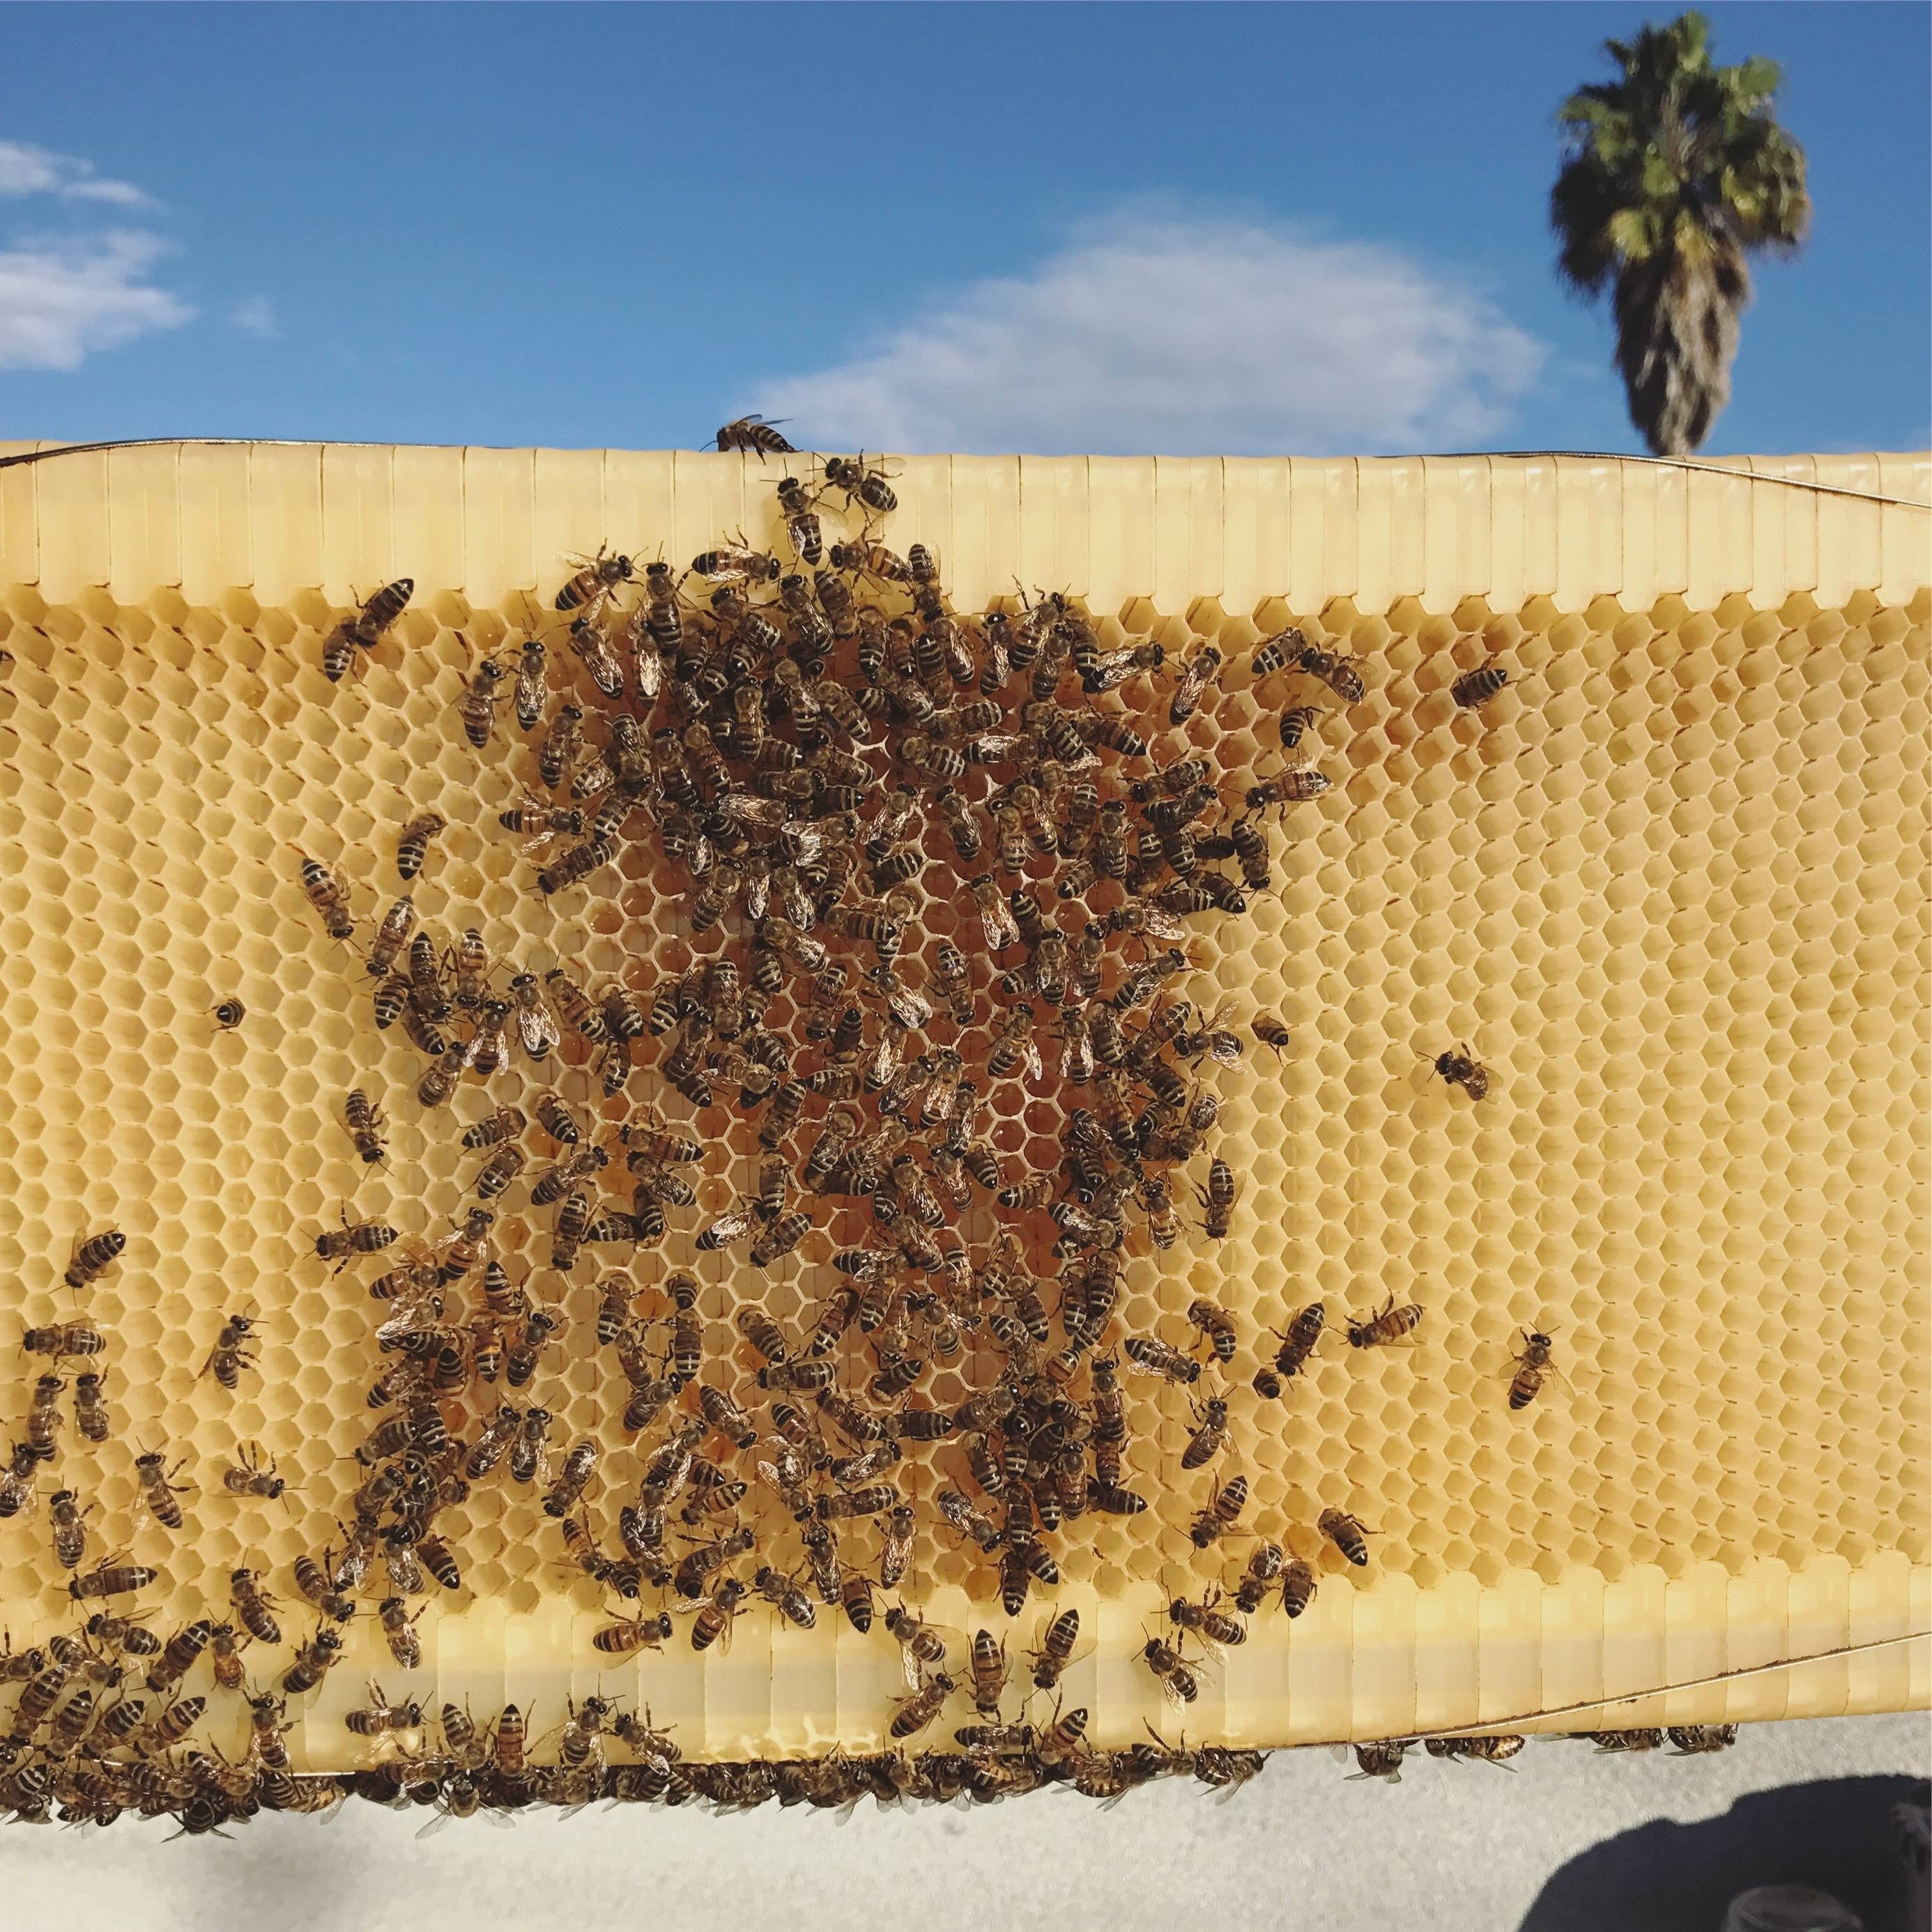 IS THE FLOW HIVE BAD FOR BEES?